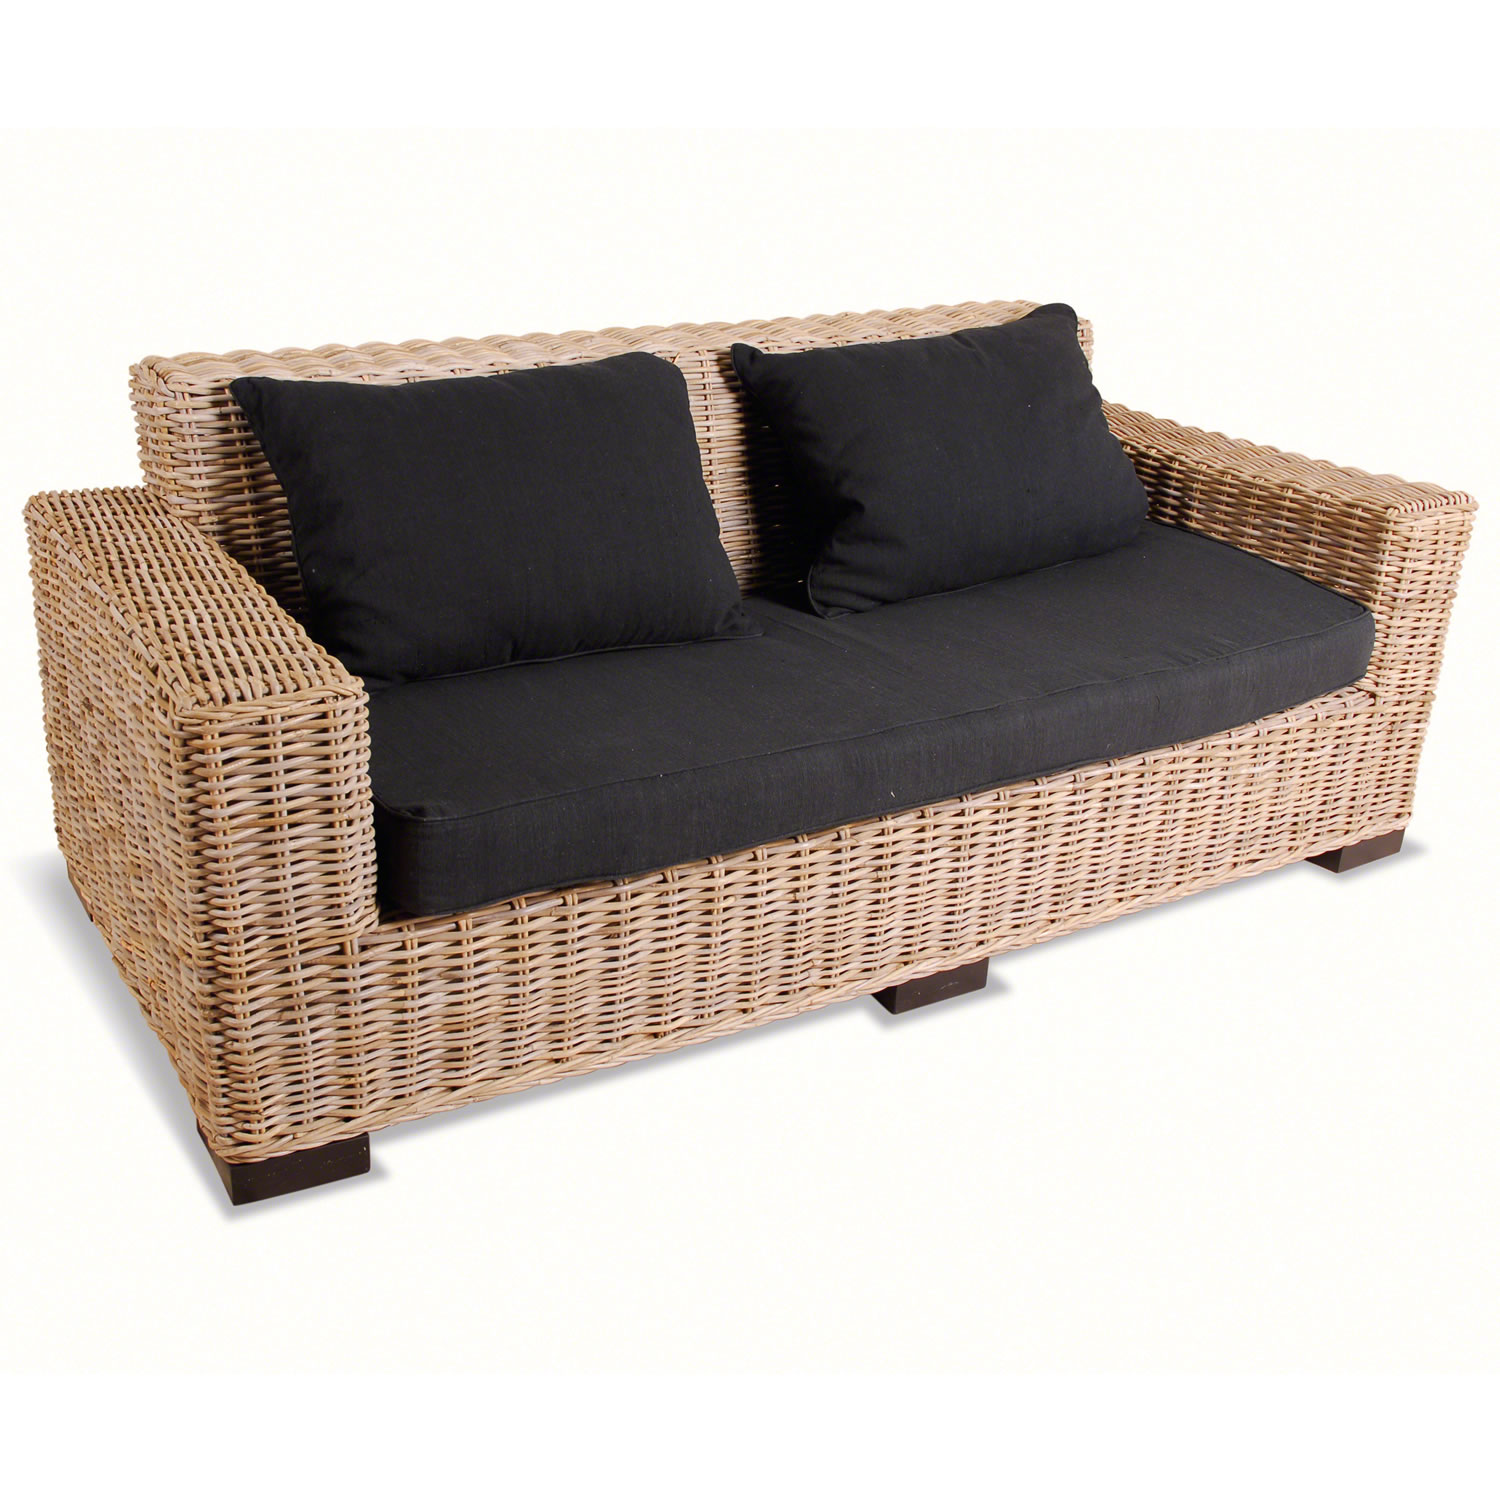 2 Seater Rattan Sofa Cushions Rattan 2 Seater Sofa Decor Ideasdecor Ideas